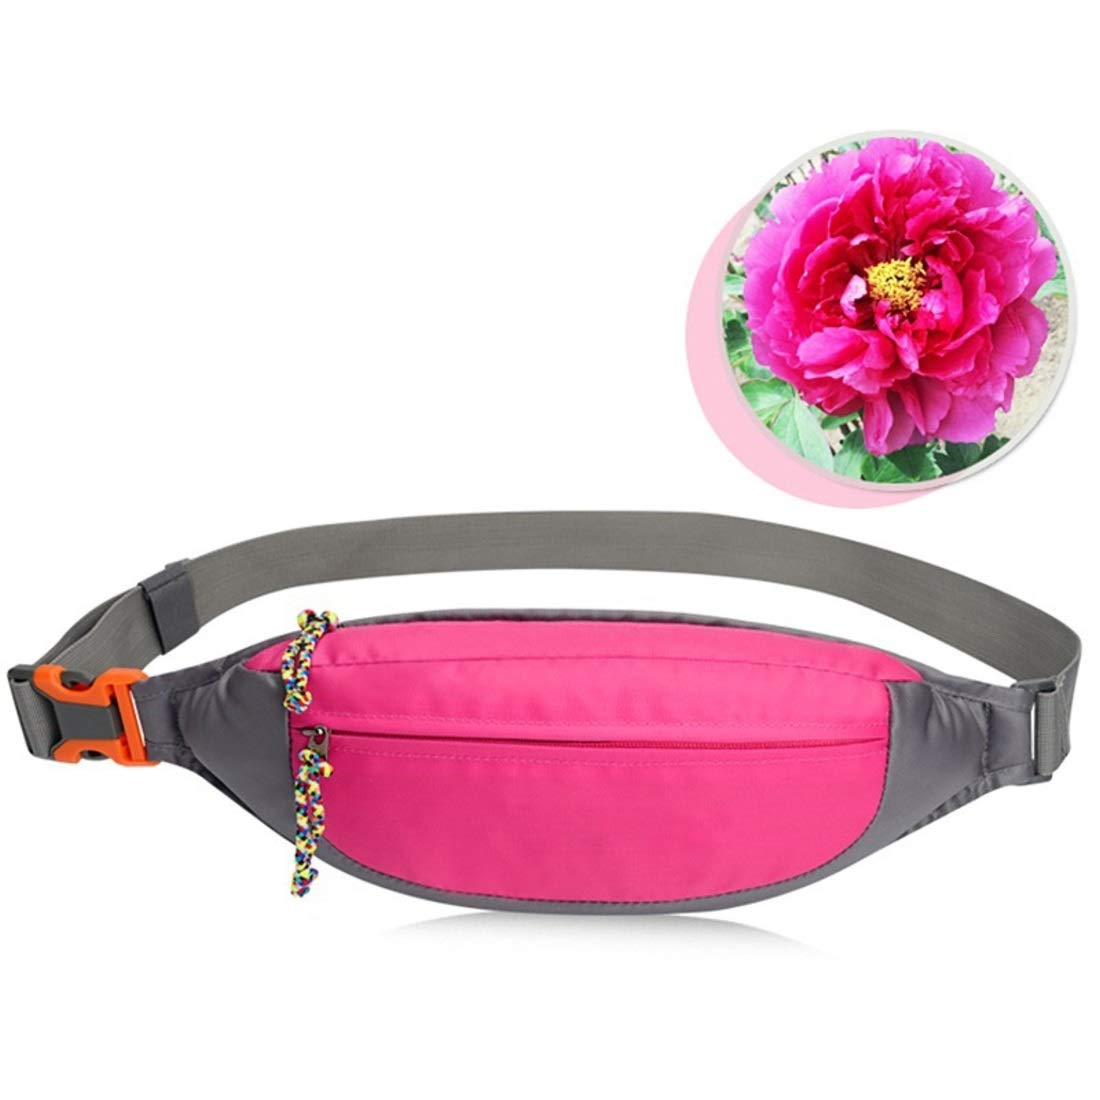 XIAMEND Outdoor Running Belt Waterproof Waist Bag Security Waist Pouch Jogging Belt Mobile Phone Pouch for Walking Holidays Hiking Cycling Running Color : Yellow